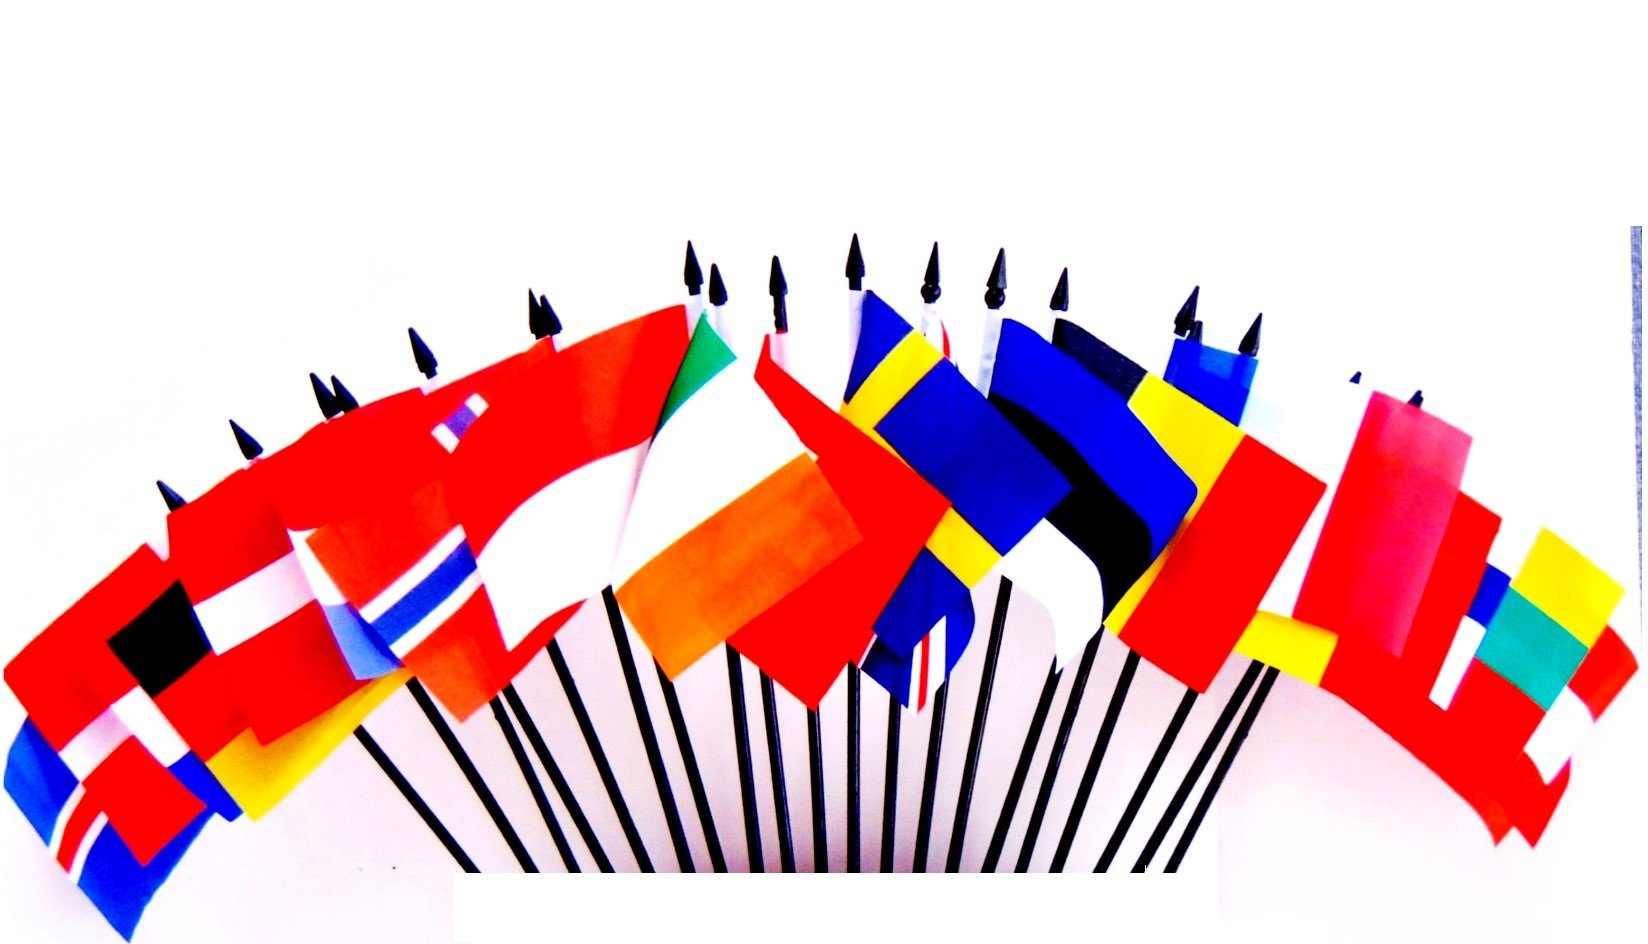 """Northwest Europe World Flag SET-20 Polyester 4""""x6"""" Flags, One Flag for Each Country in Northwest Europe 4x6 Miniature Desk & Table Flags, Small Mini Stick Flags"""